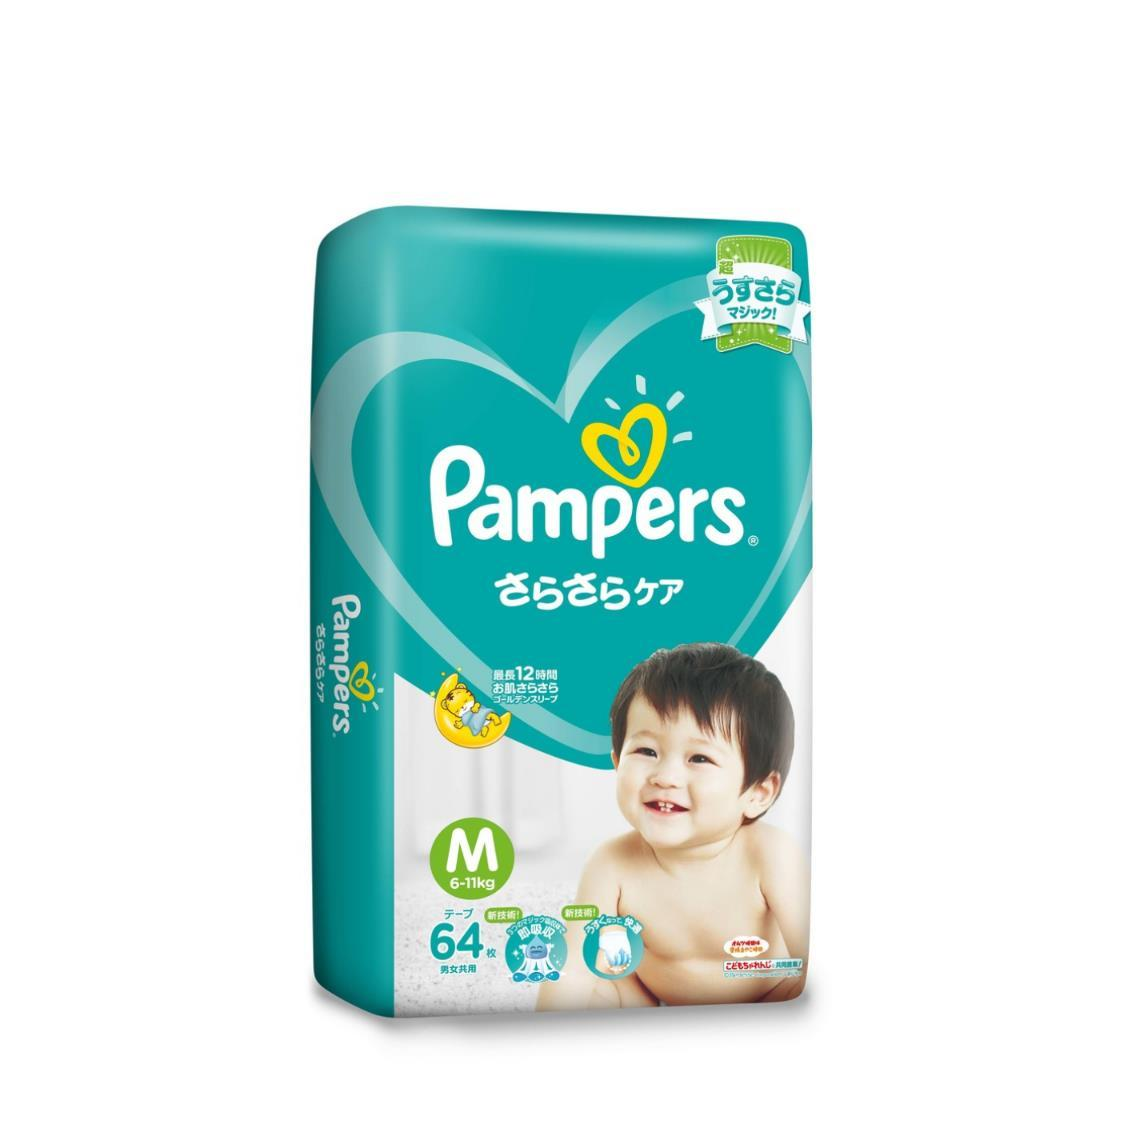 Pampers Baby Dry Diapers M 64s 6-11kg